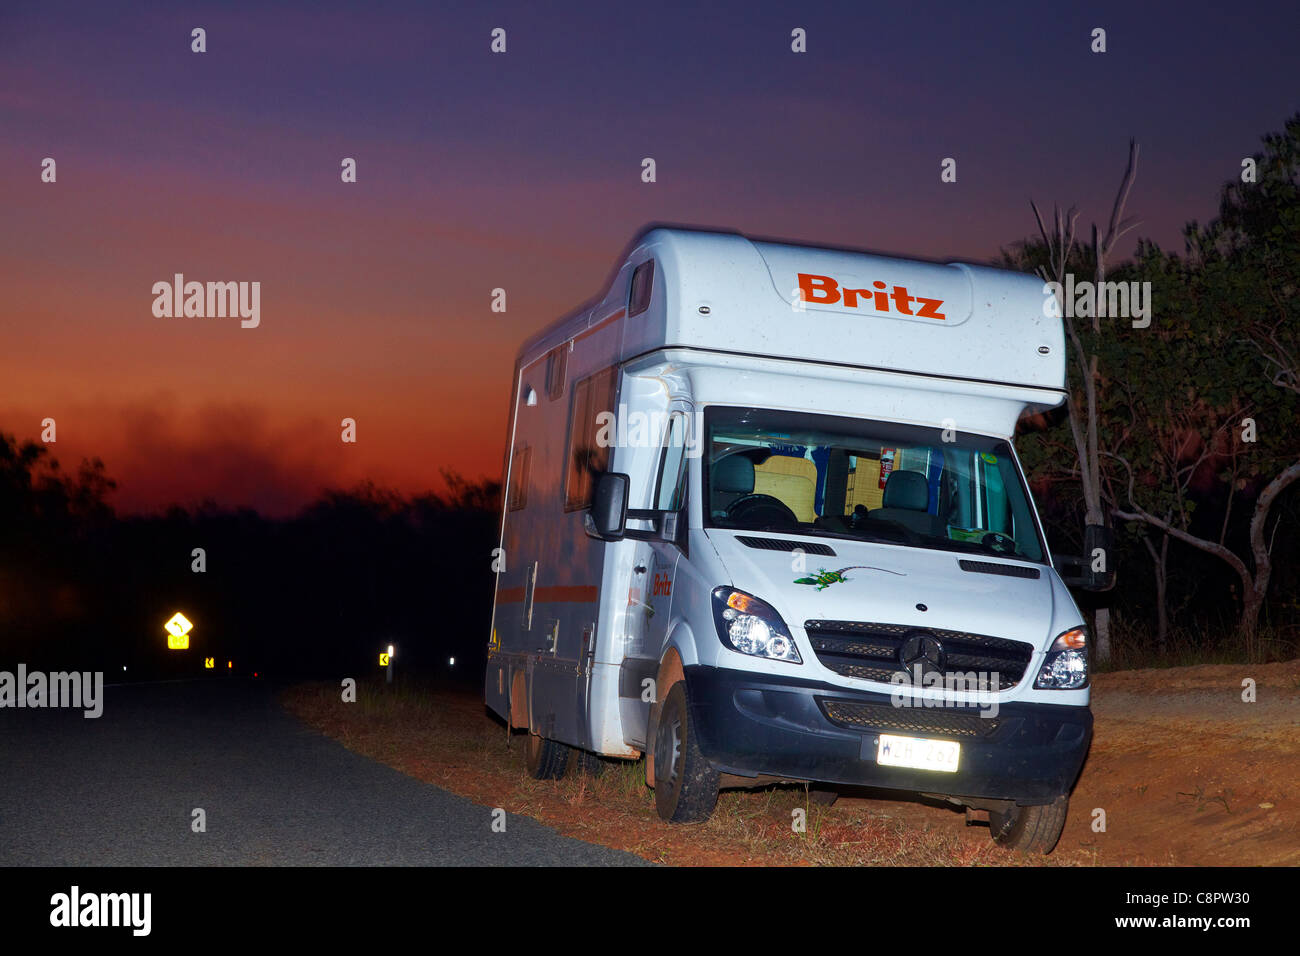 Campervan at dusk, Litchfield National Park, Northern Territory, Australia - Stock Image